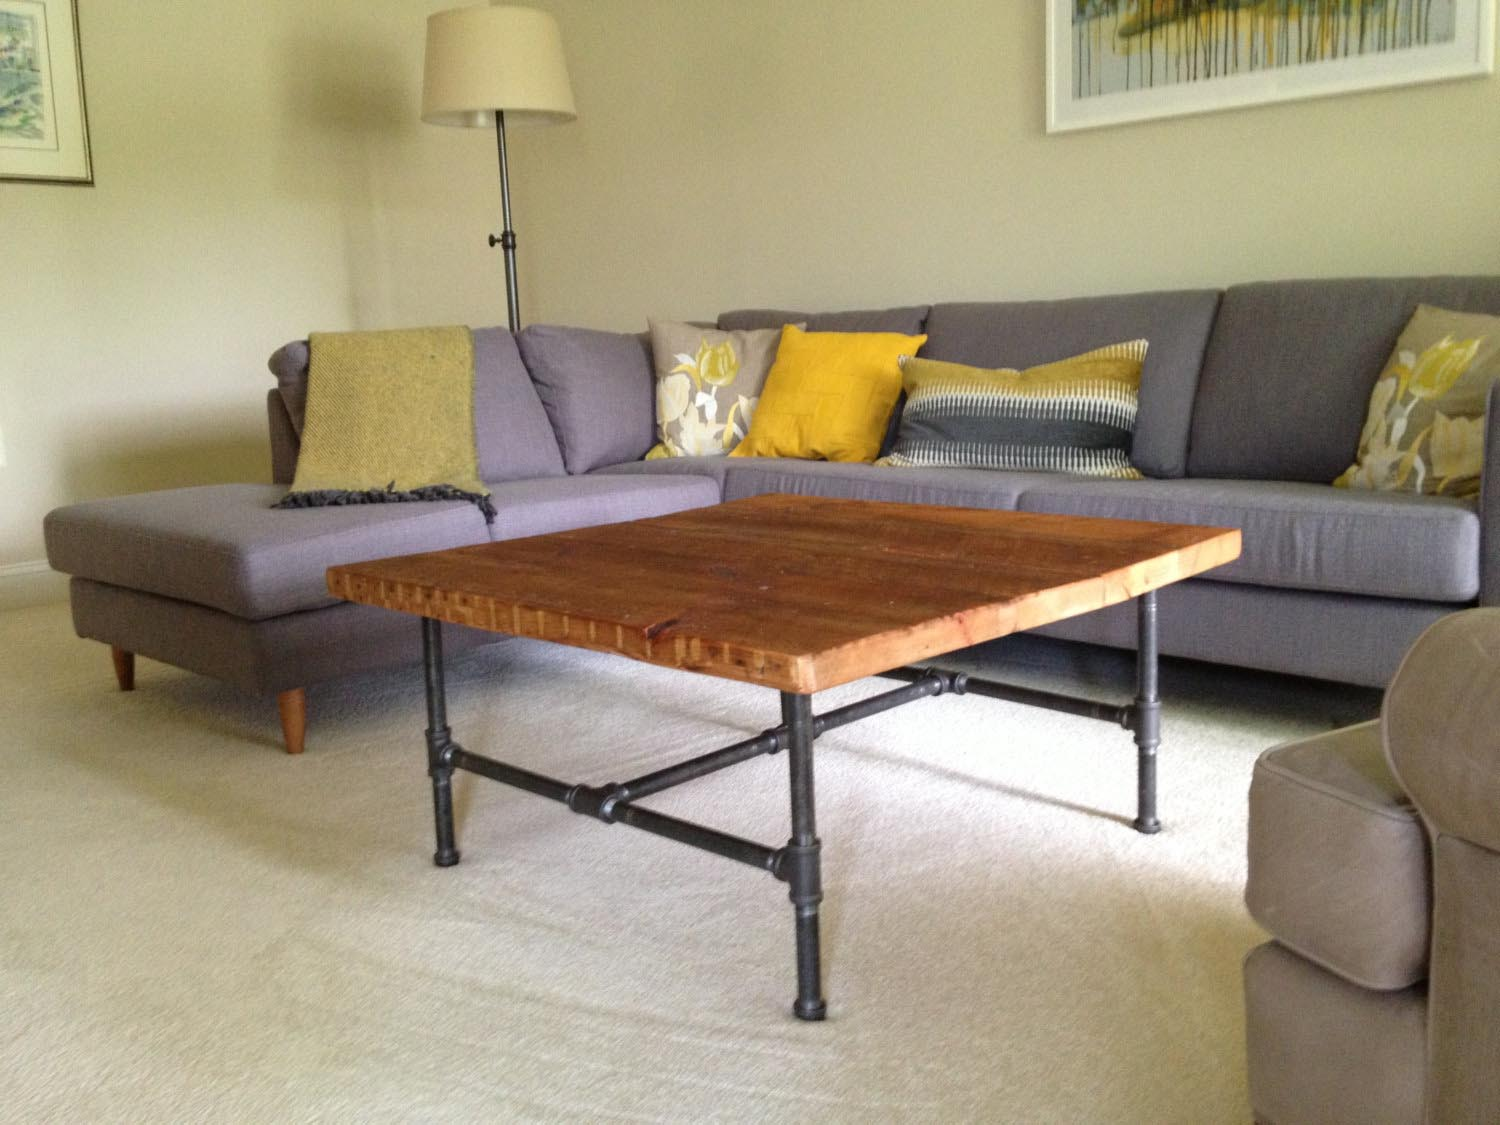 Steel Leg Coffee Table